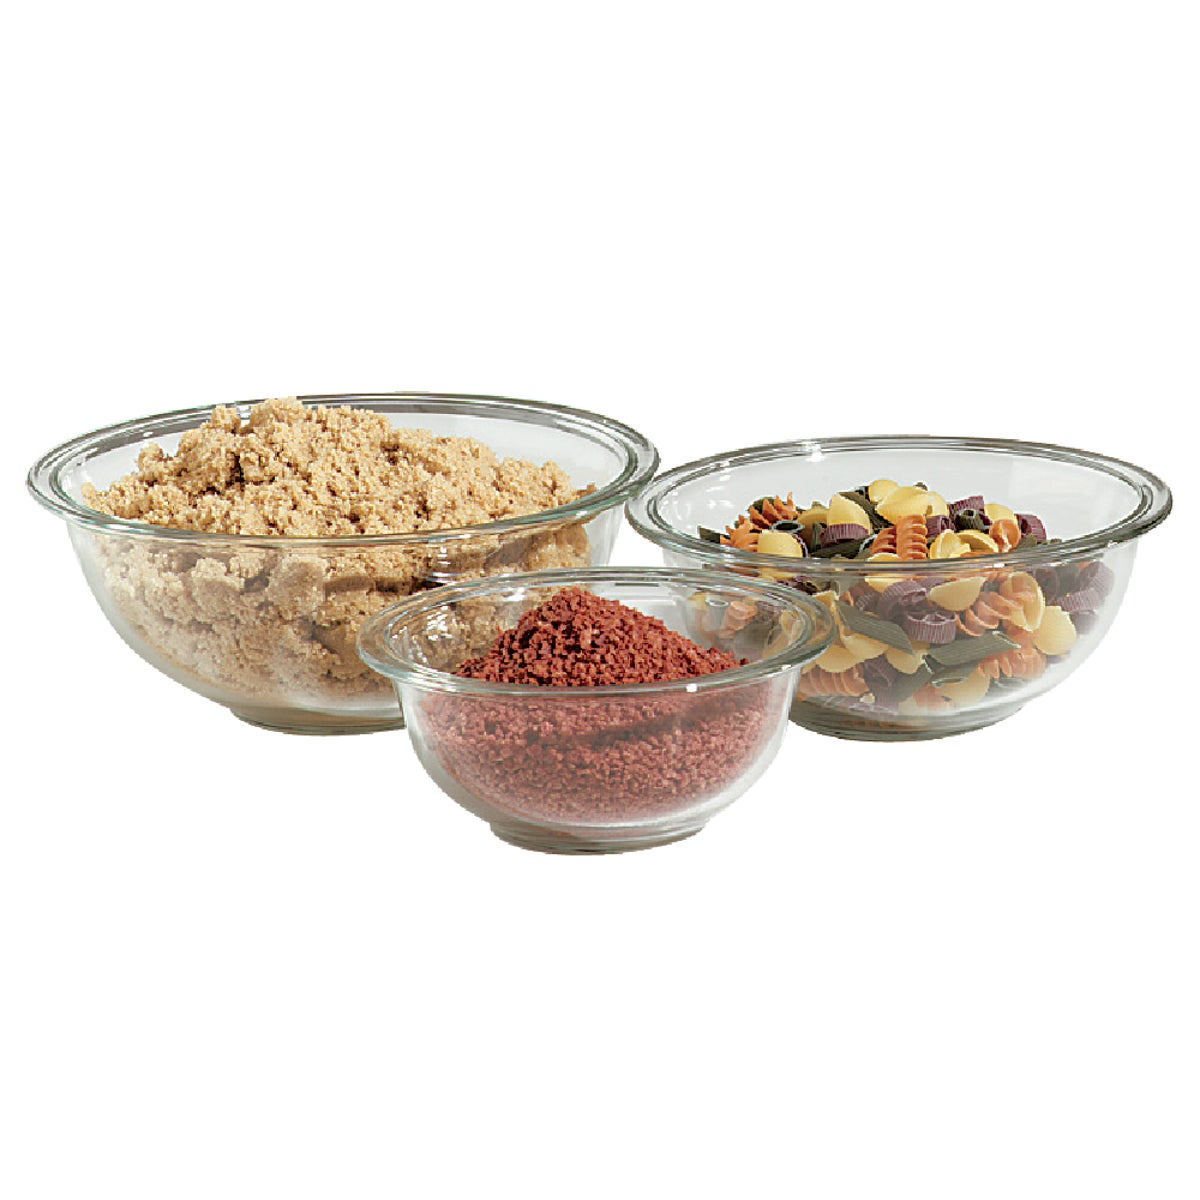 MIXING BOWL SET - 6001001 by World Kitchen